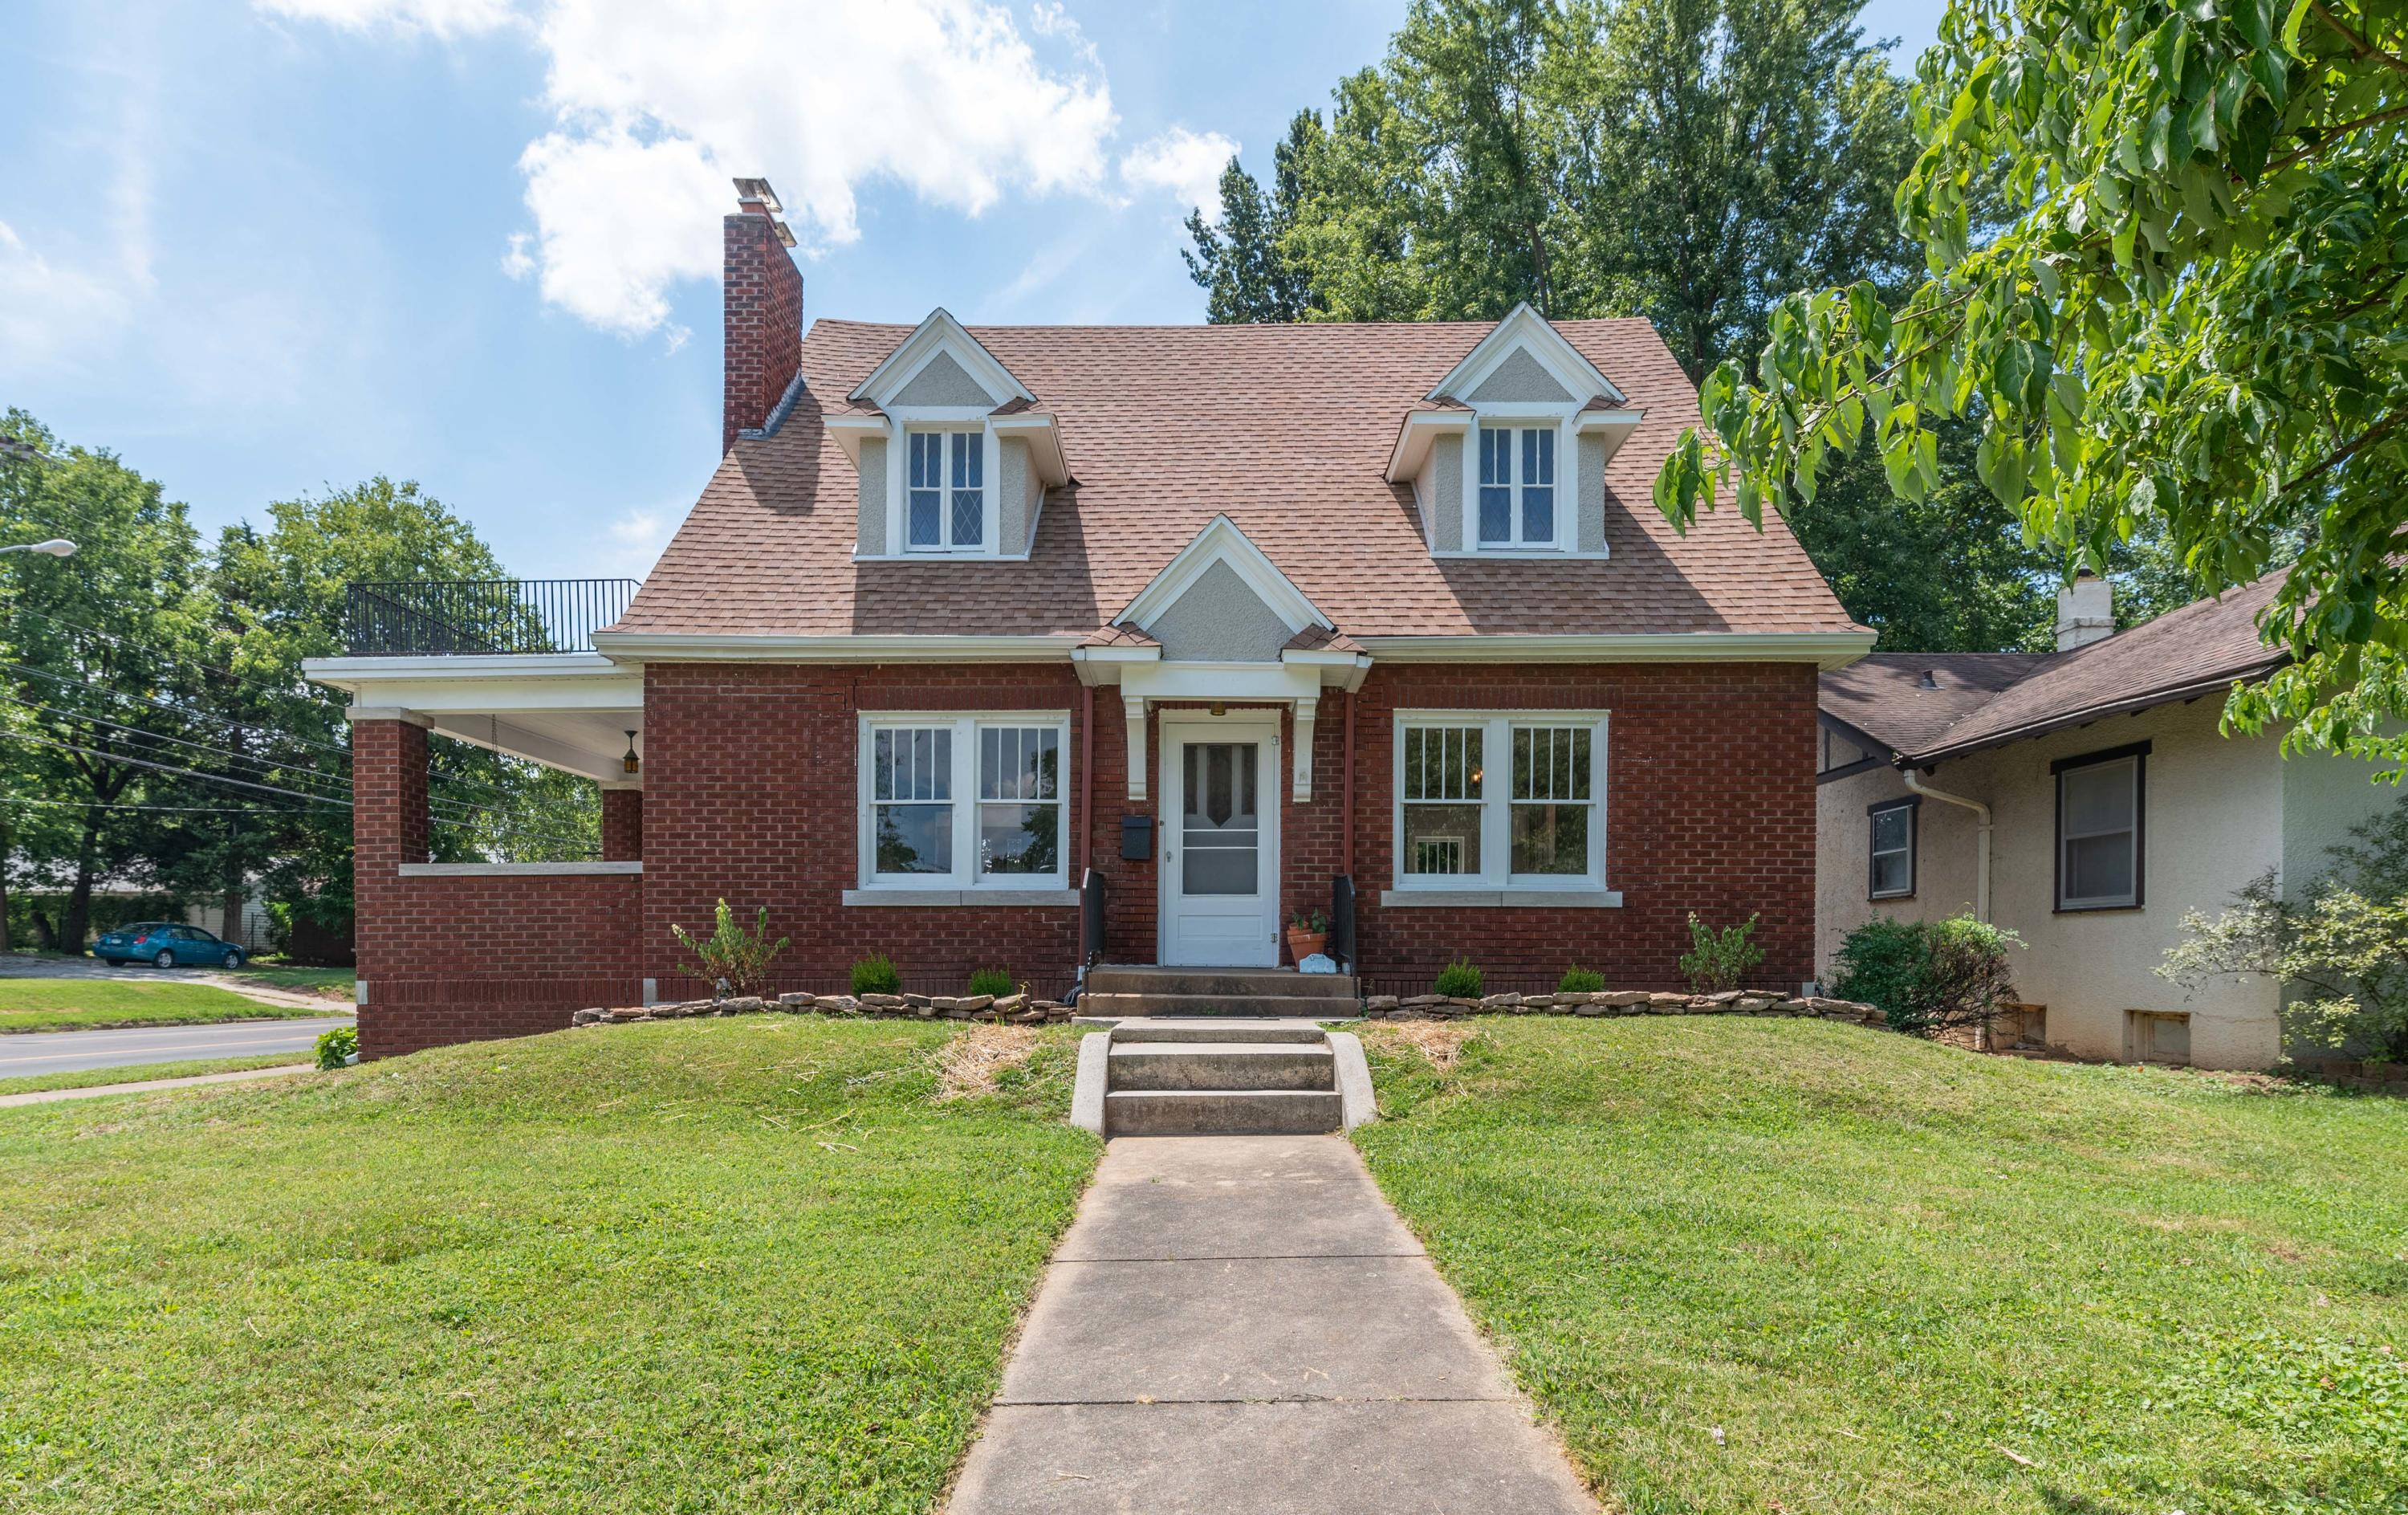 550 East Normal Street Springfield, MO 65807